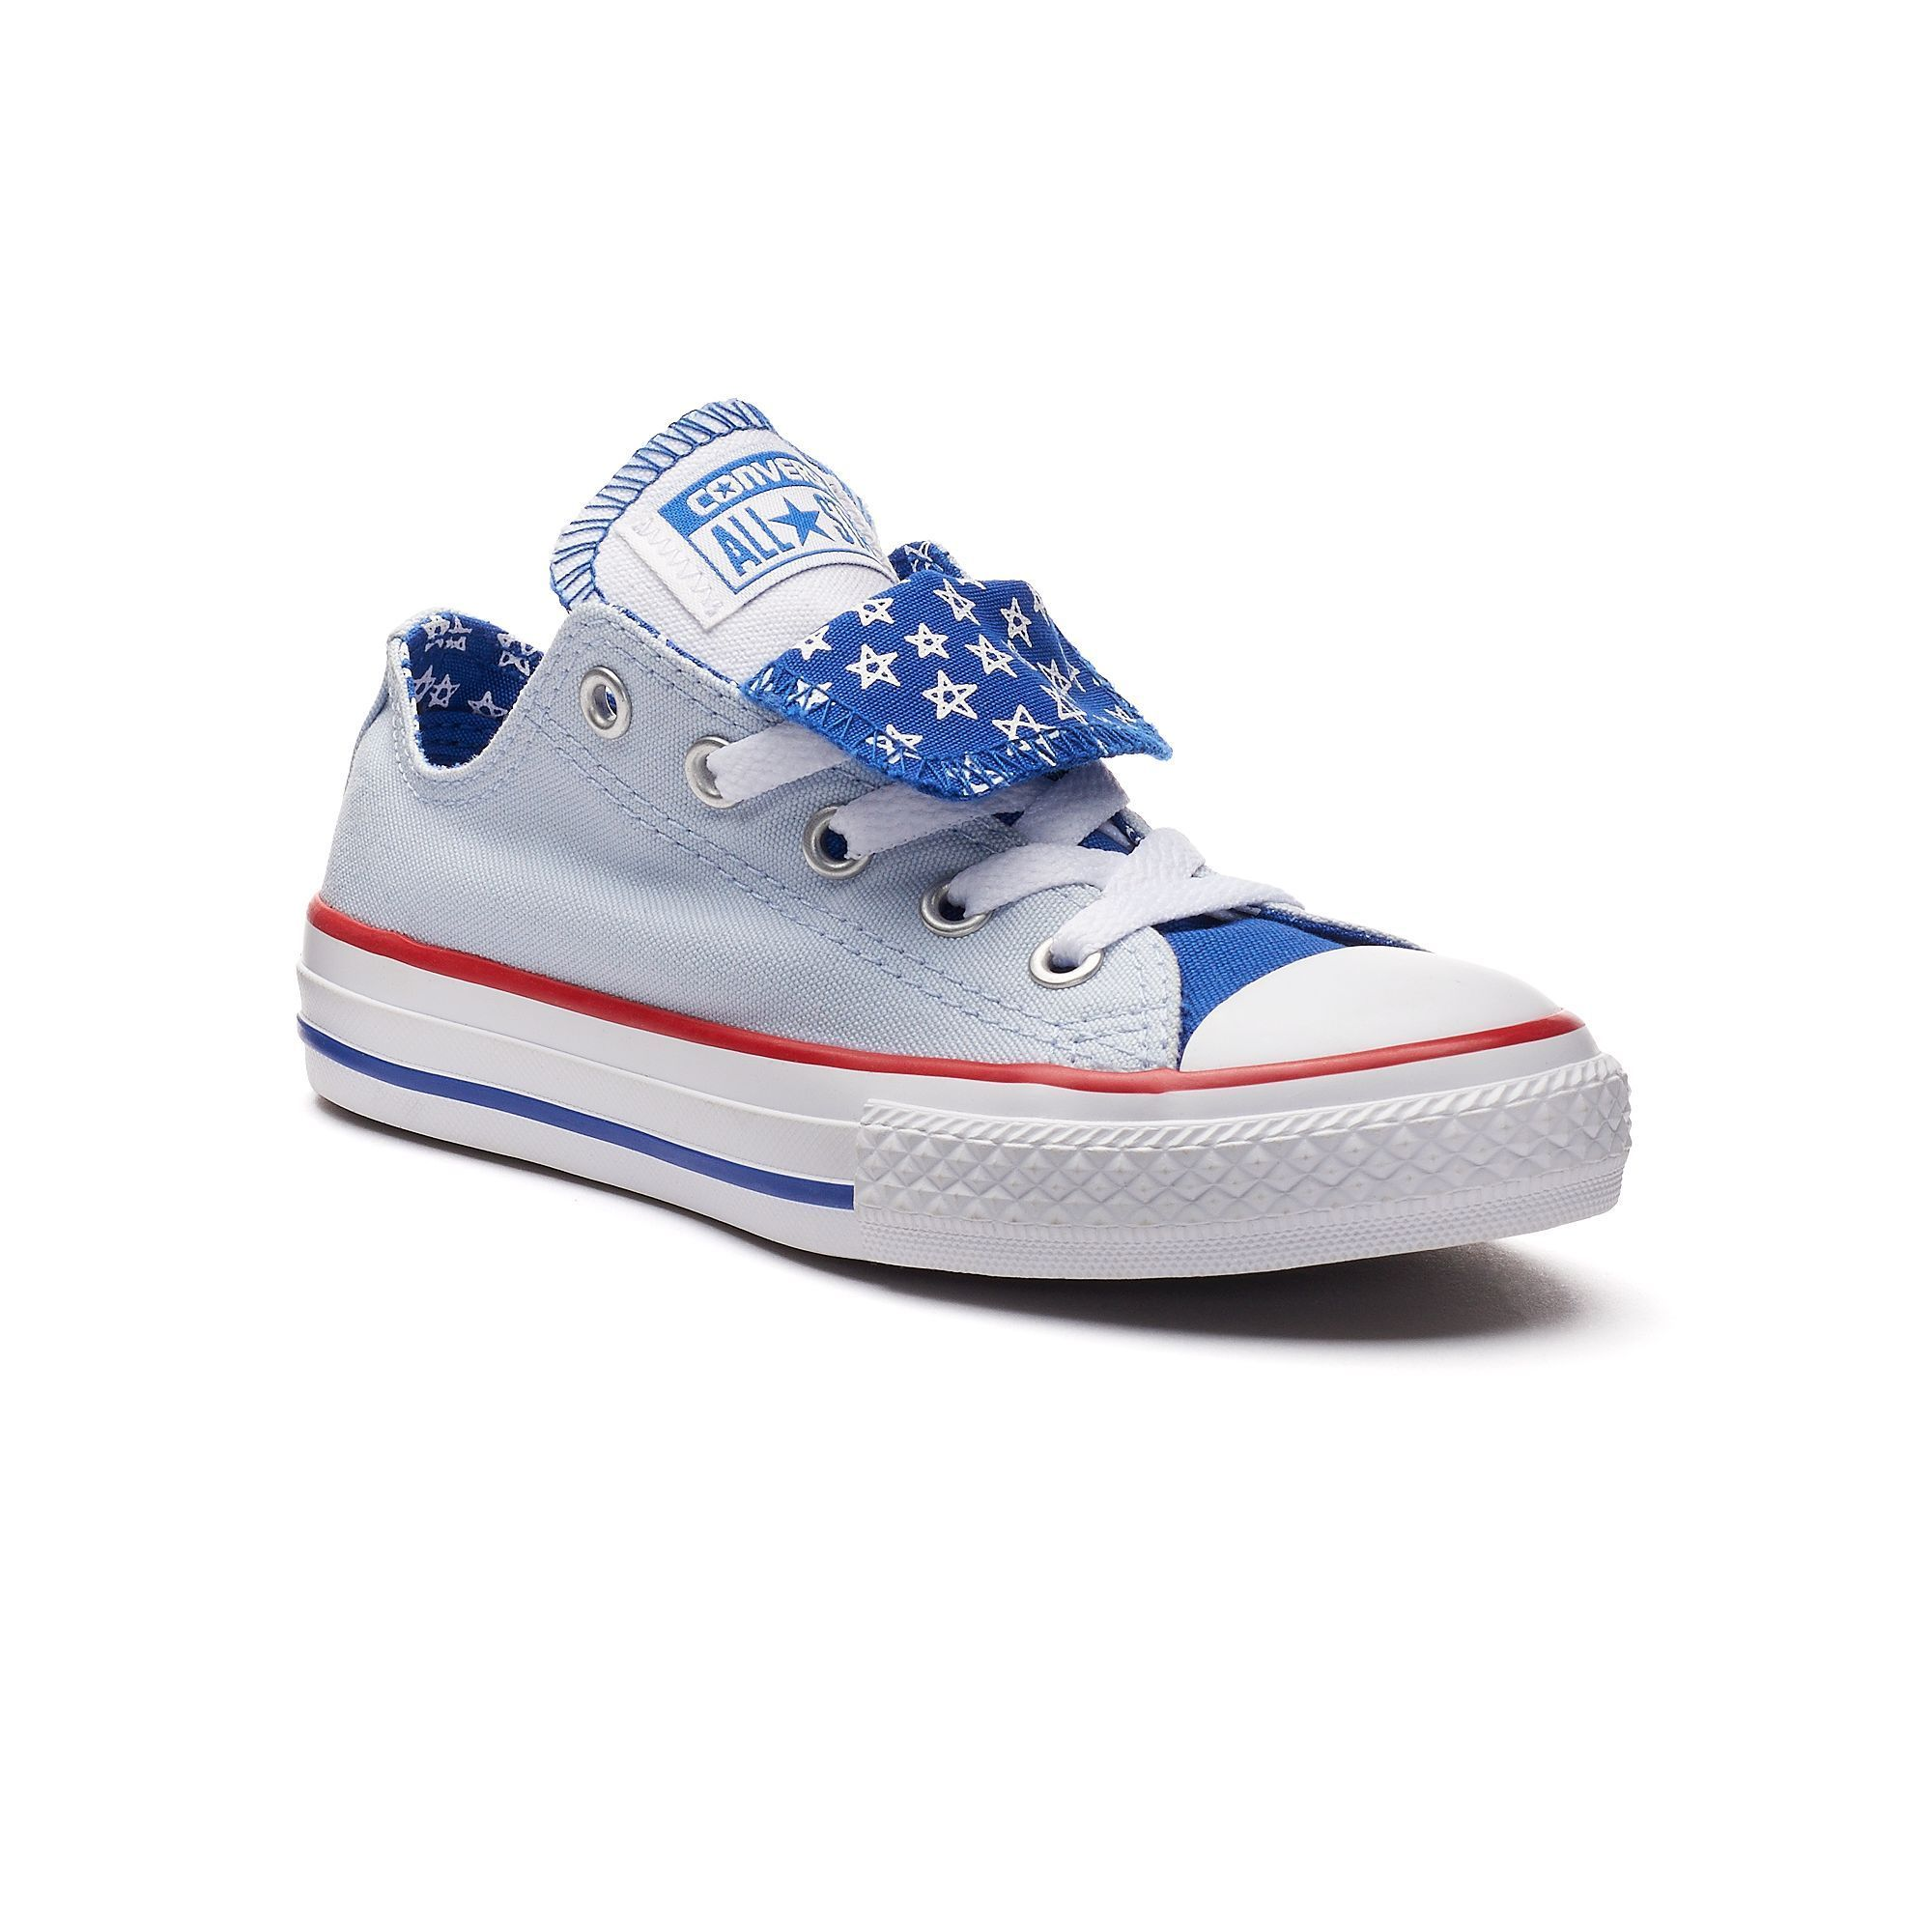 006e6c49c51f Kid s Converse Chuck Taylor All Star Print Double-Tongue Shoes ...